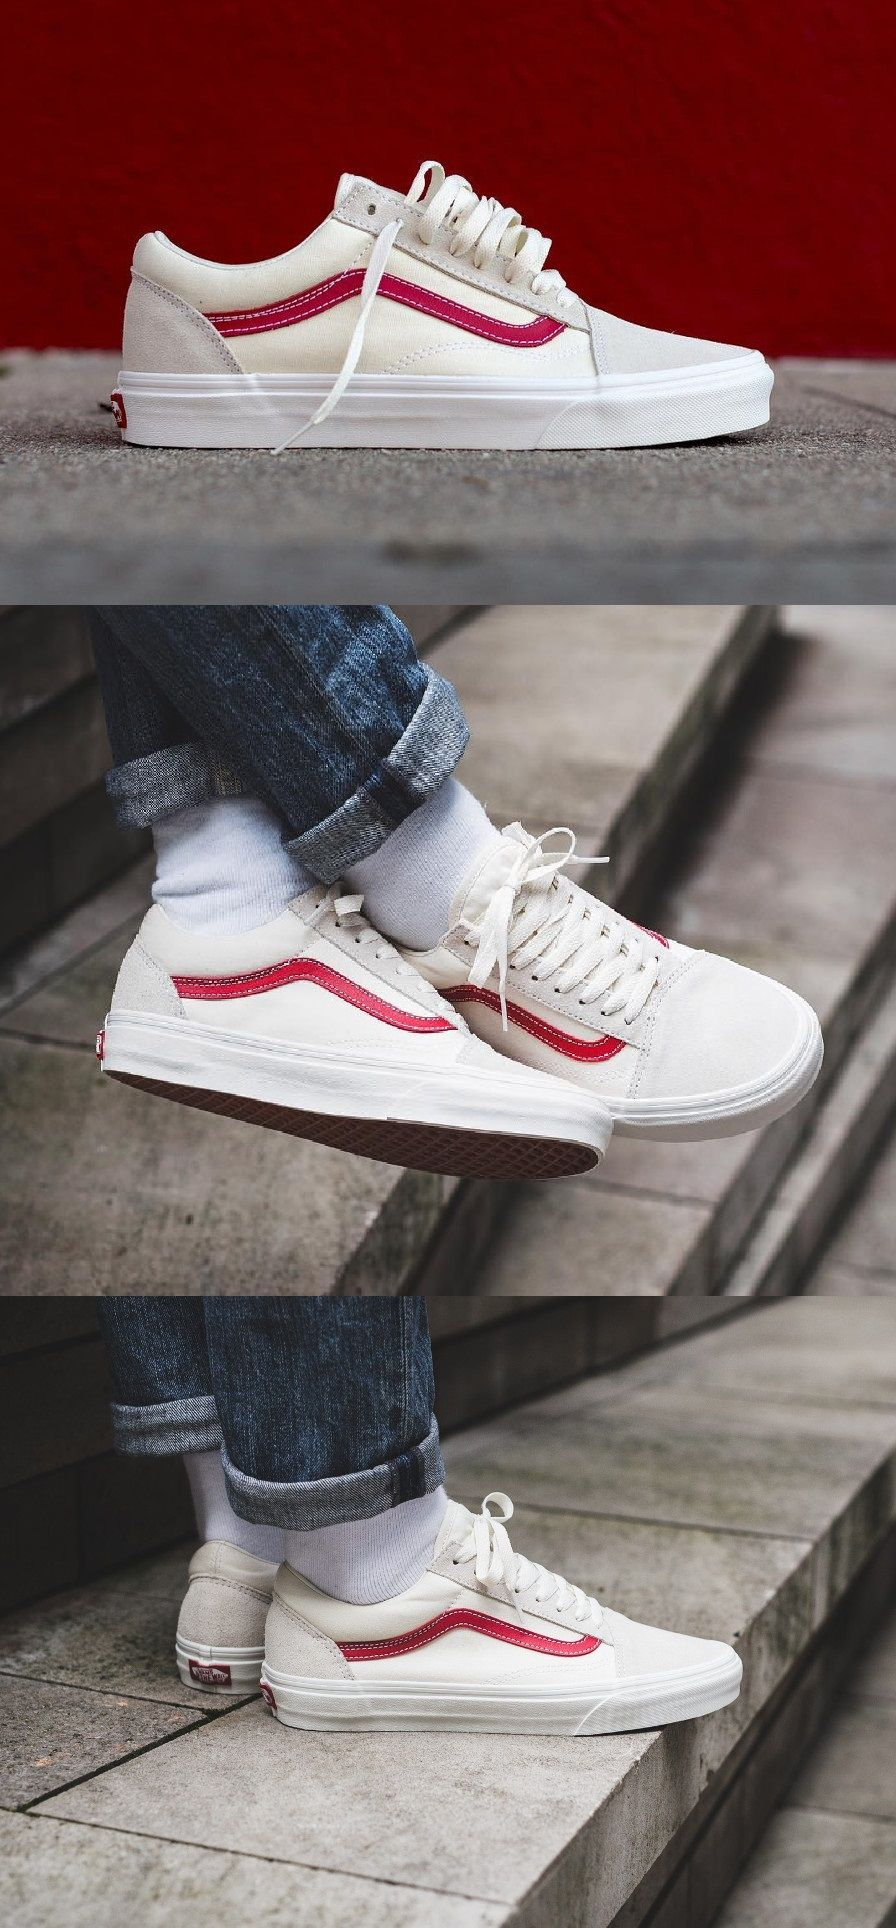 Ua Old Skool Baskets Basses Vintage White Rococco Red Zalando Fr Vintage Shoes Sneakers Fashion Sneakers